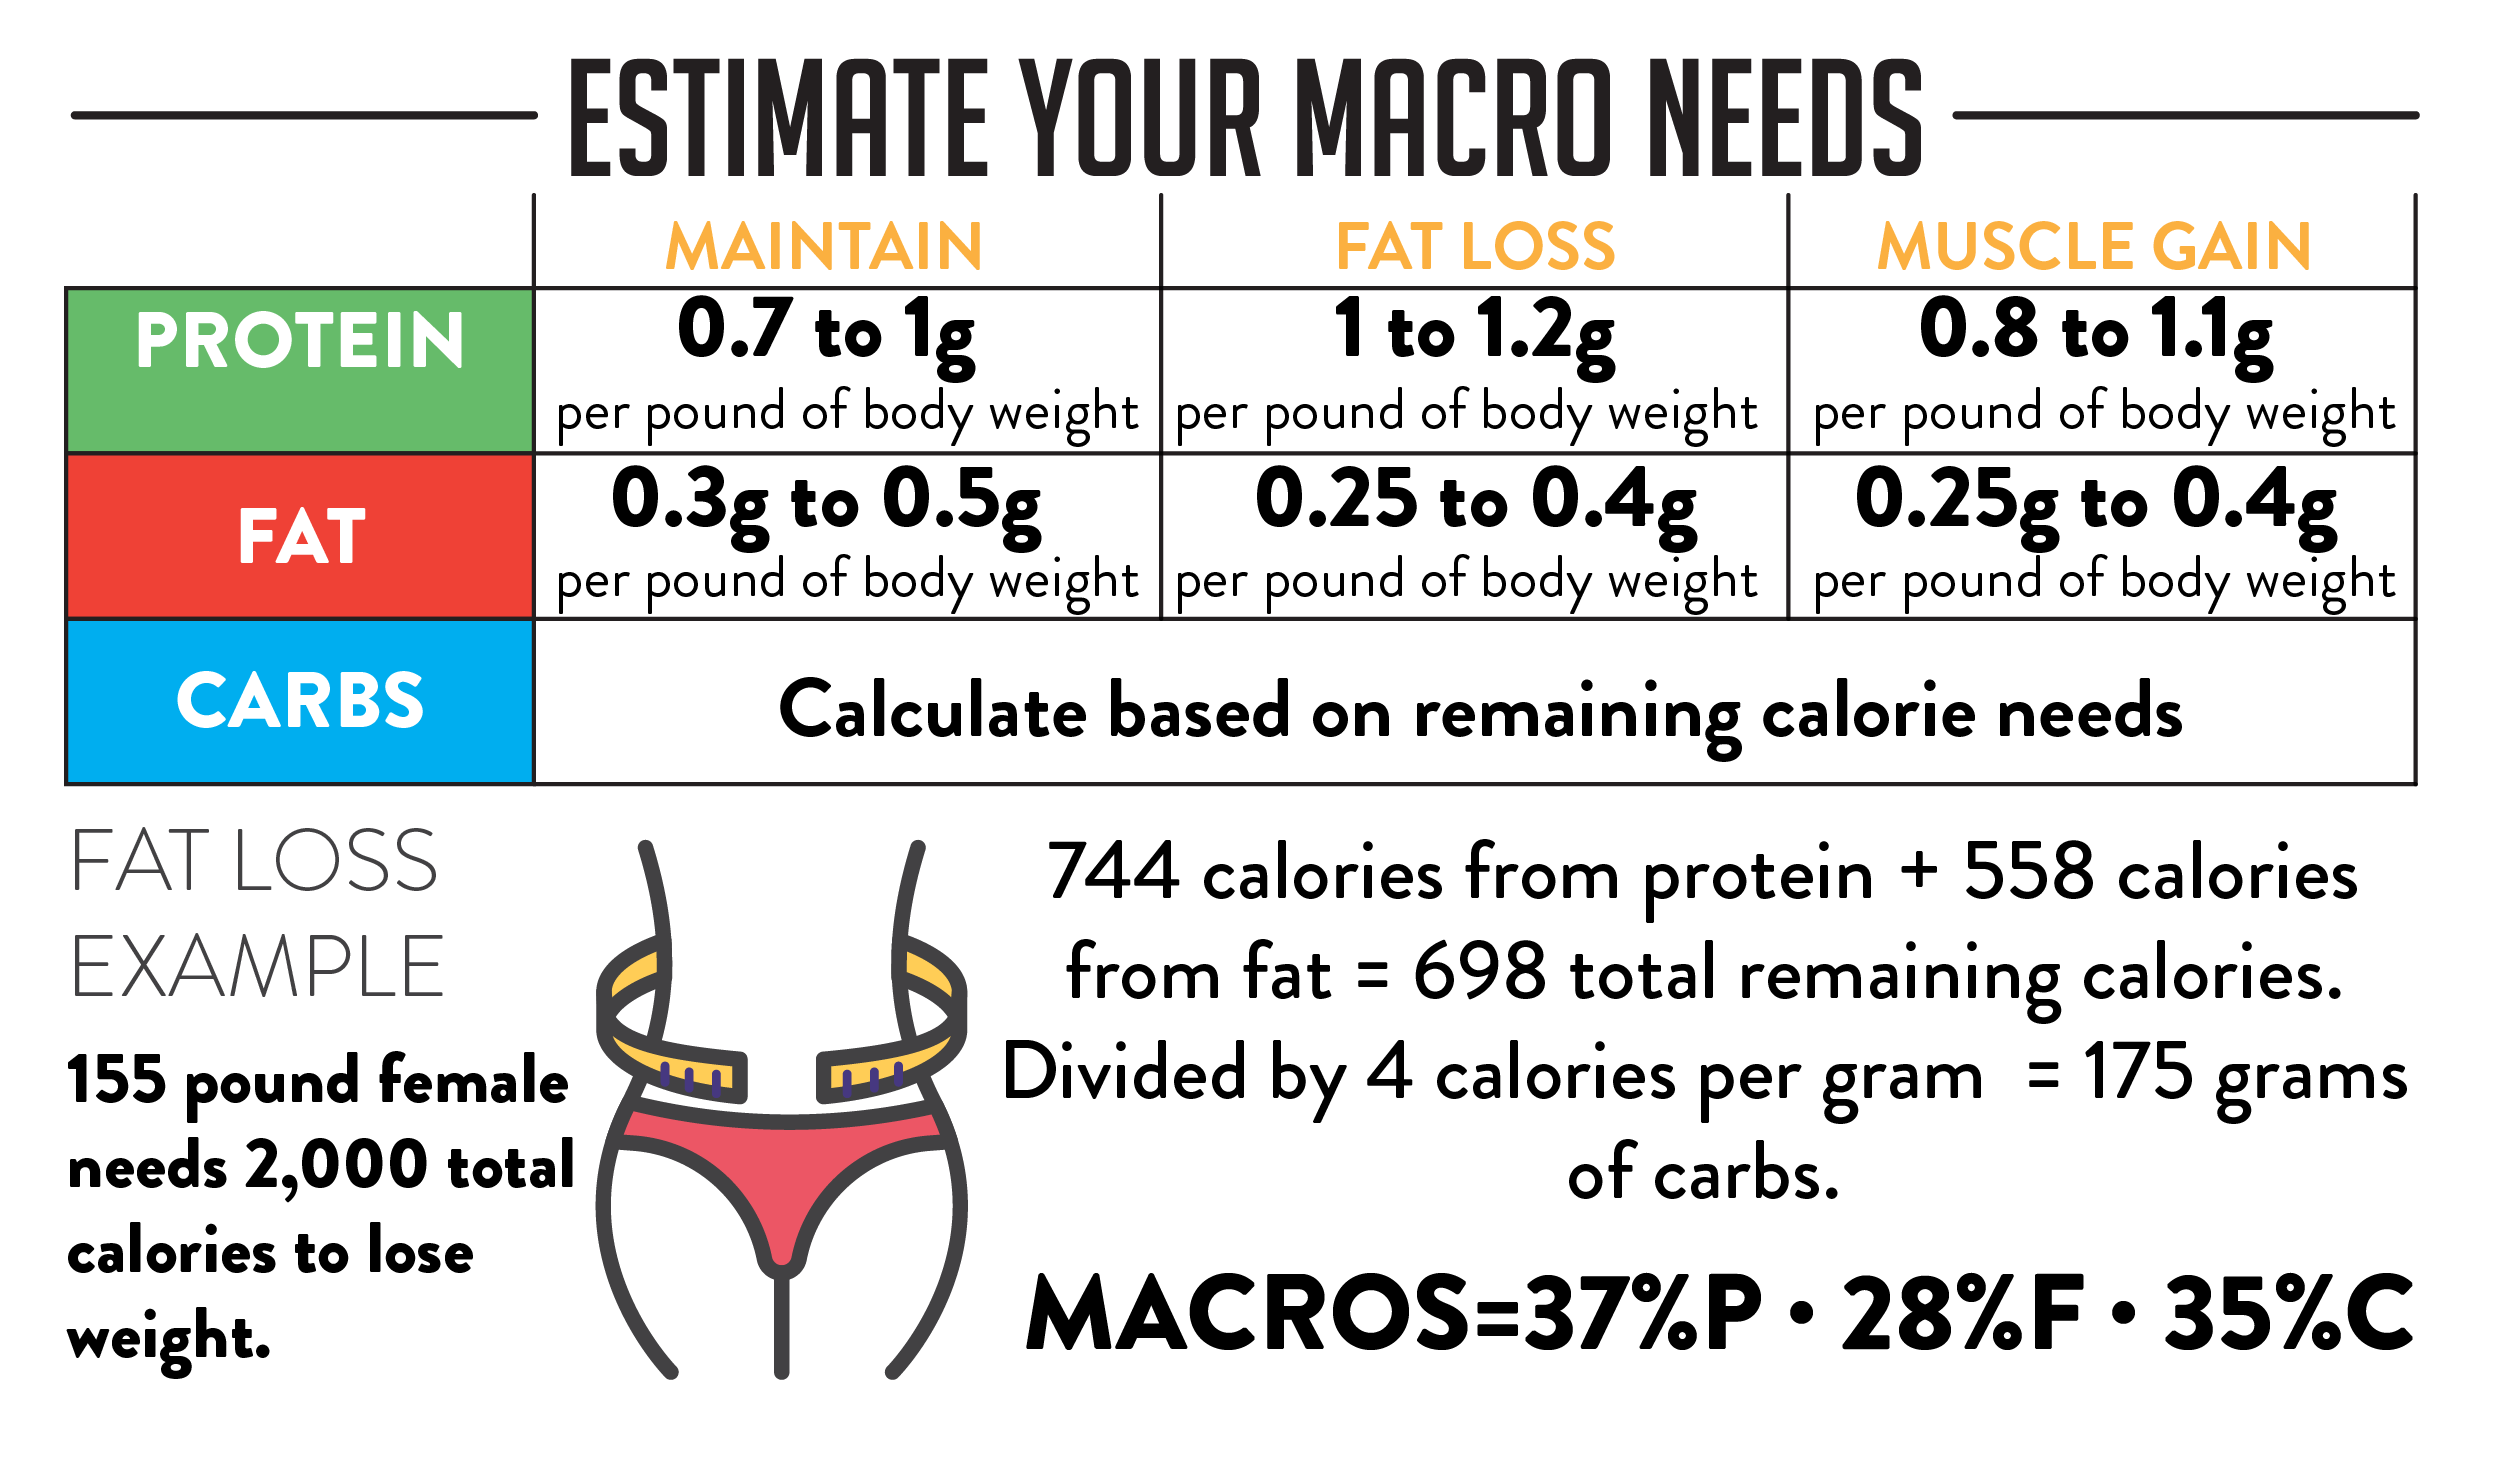 Macros-Estimate-Your-Macros-Trifecta